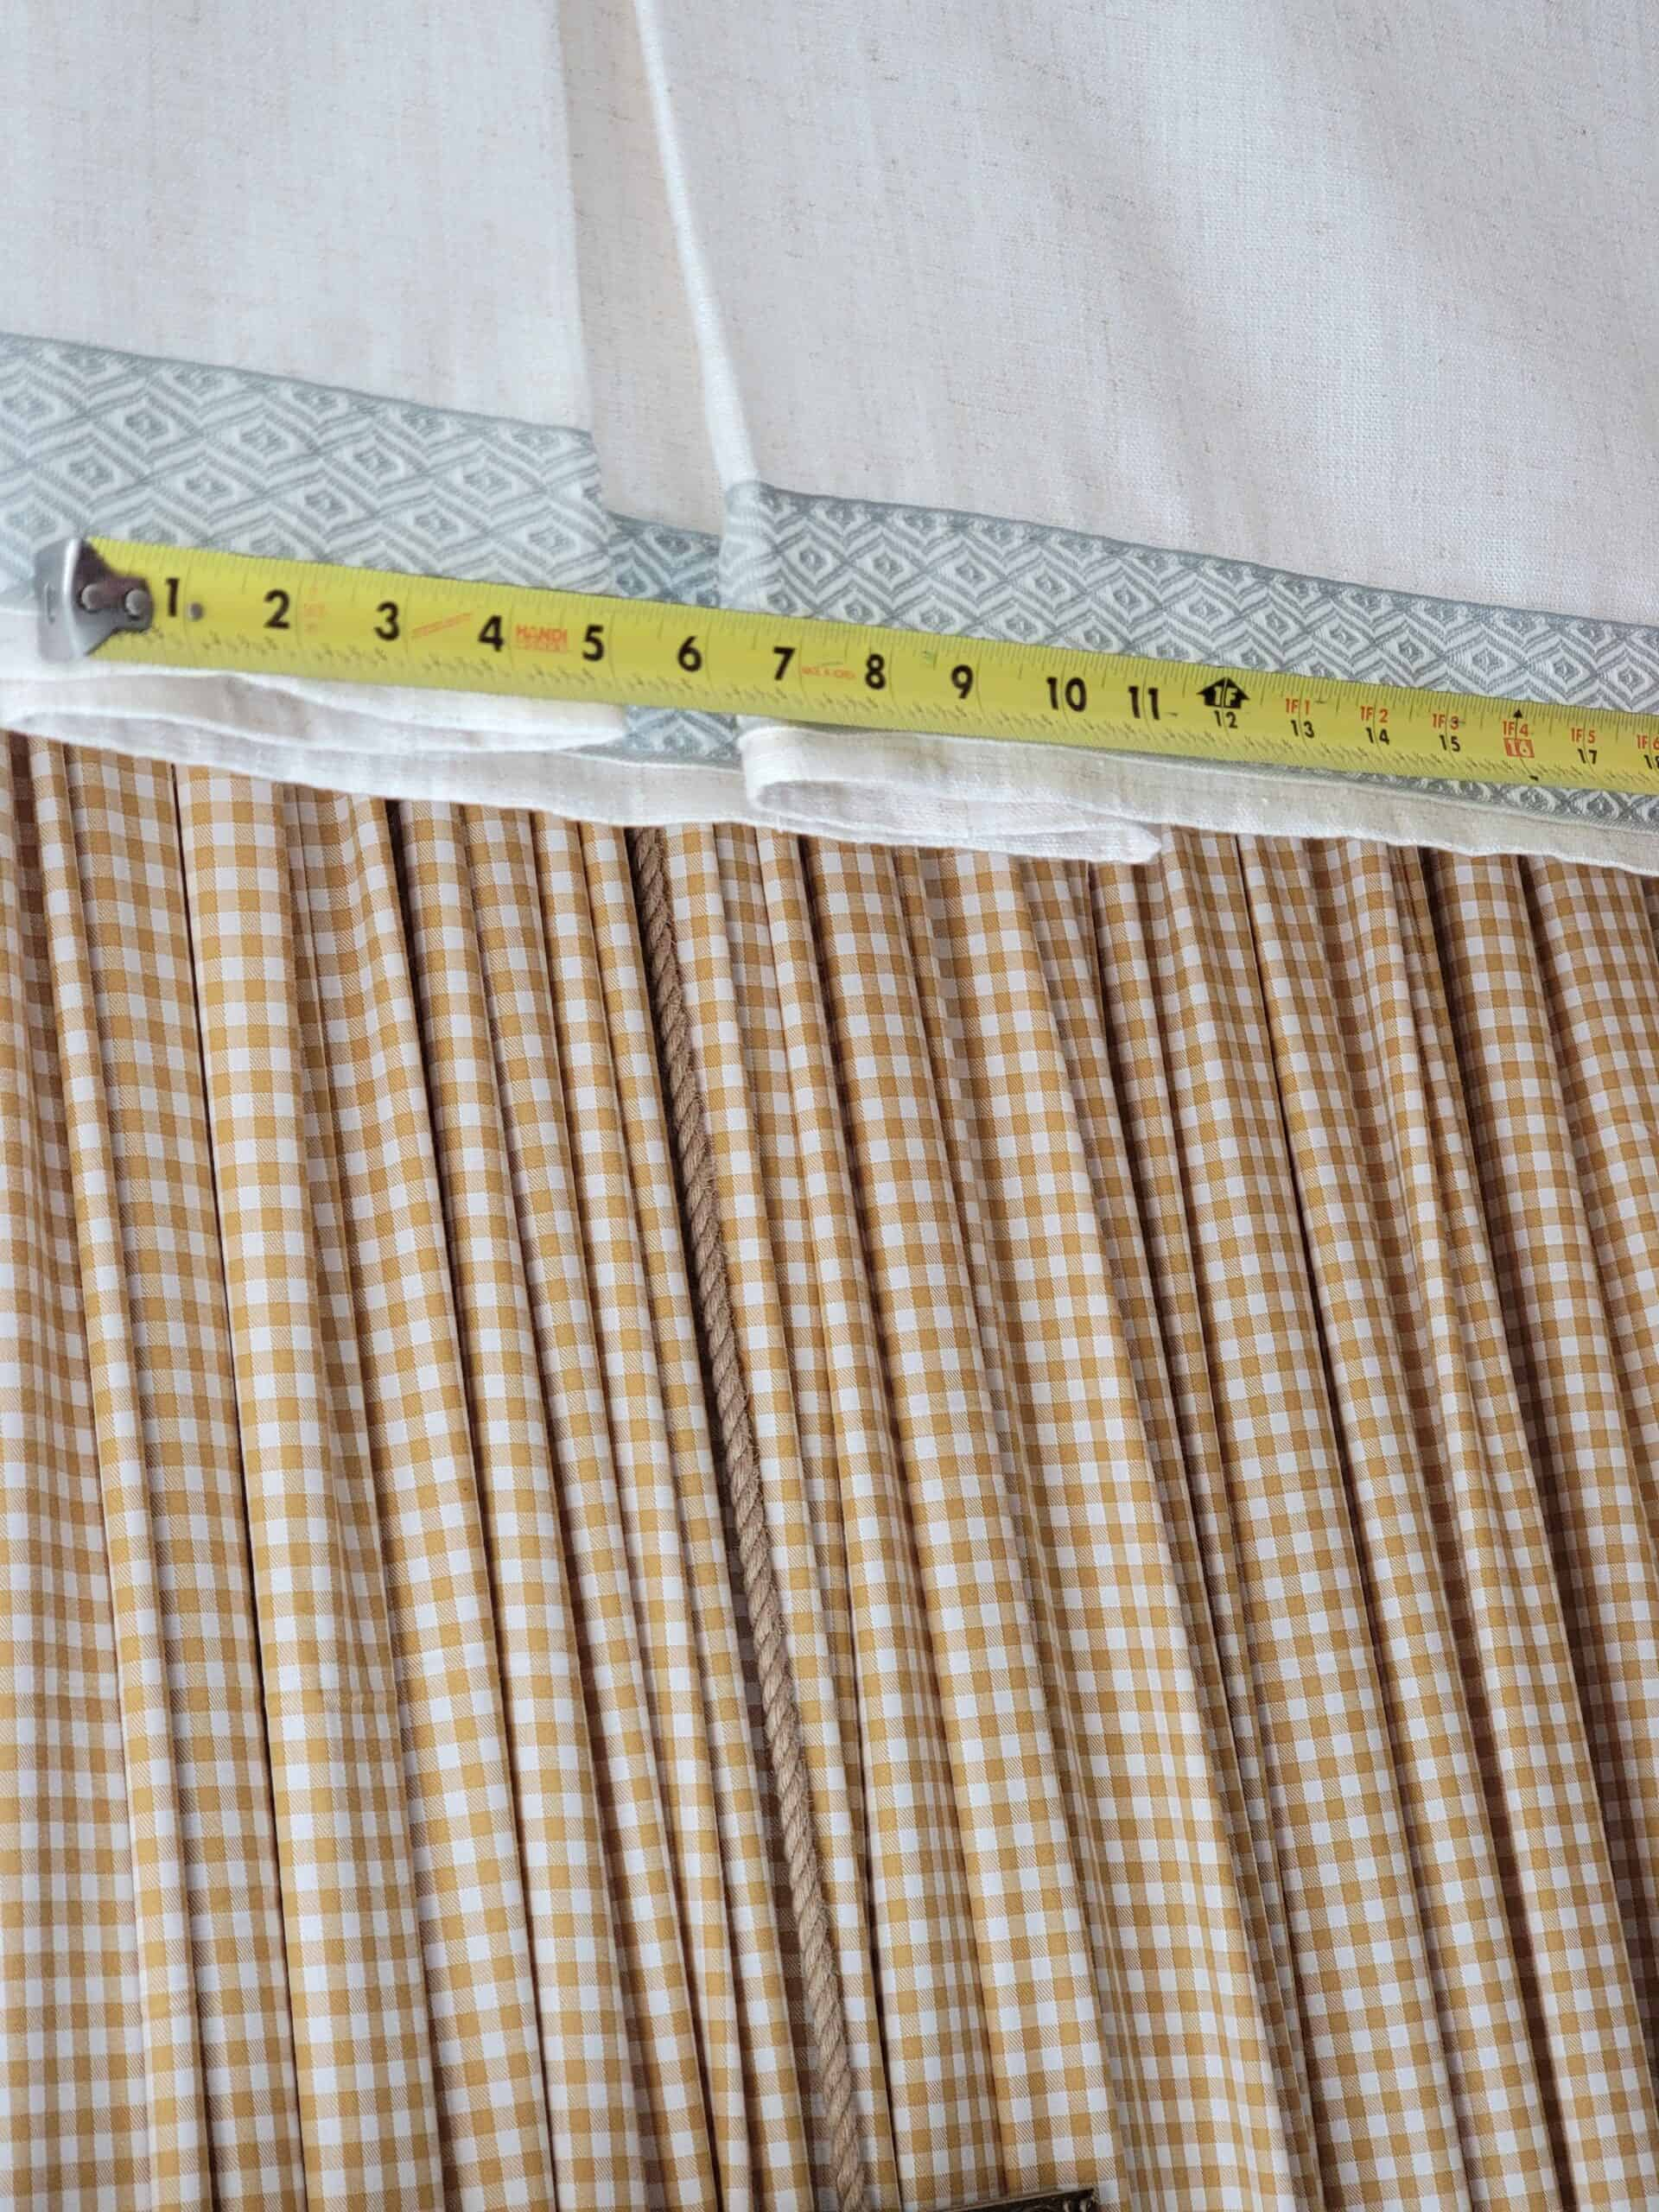 yellow tape measure against headboard canopy